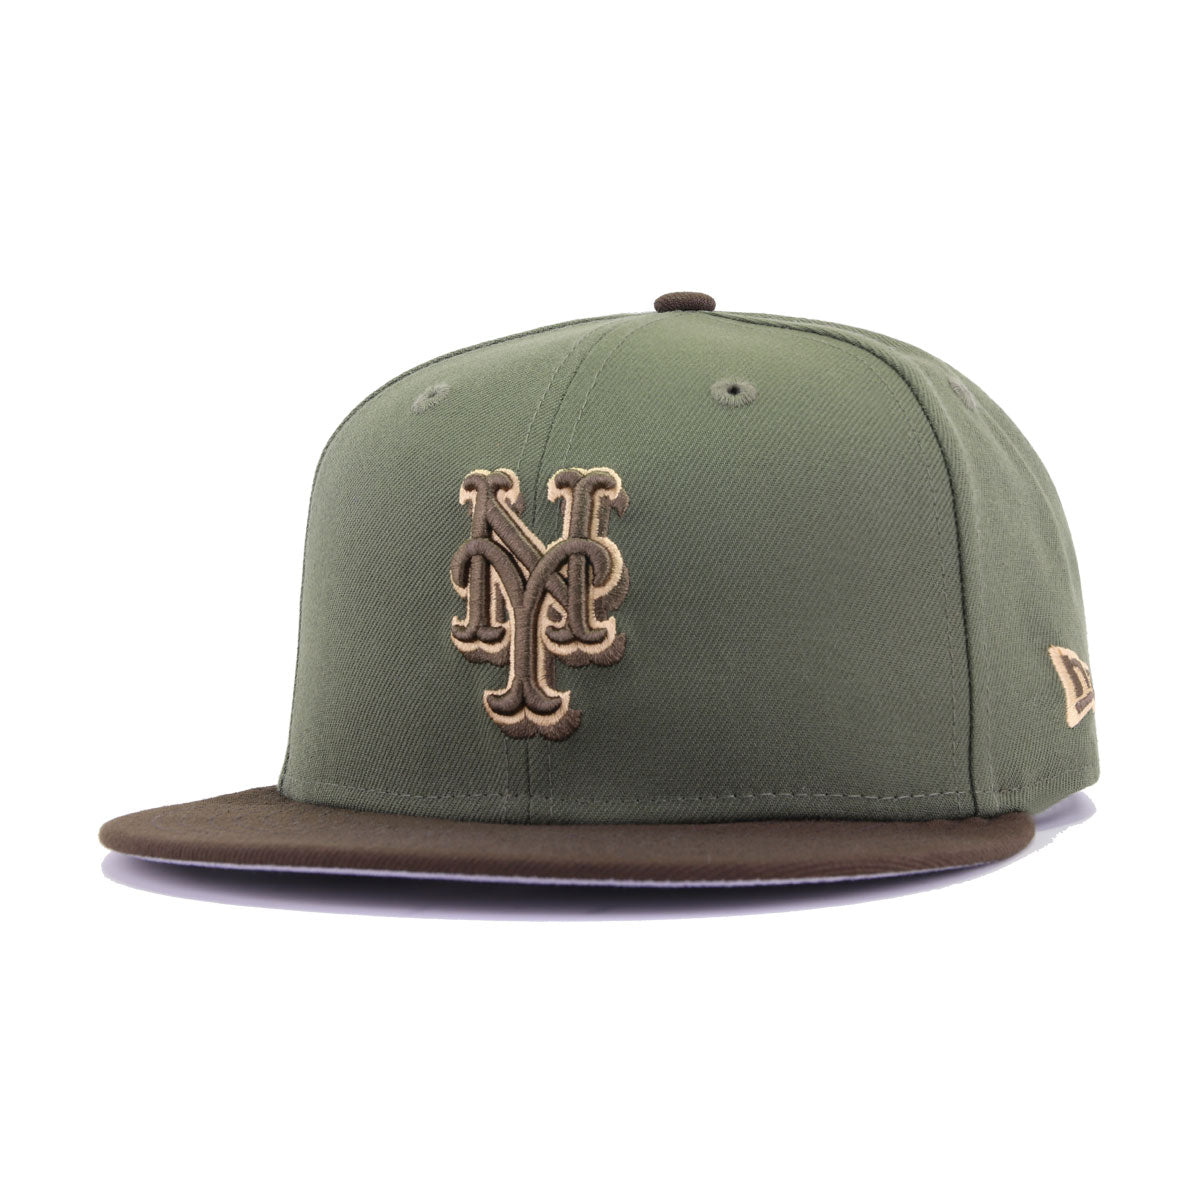 New York Mets New Olive Walnut 25th Anniversary New Era 9Fifty Snapback